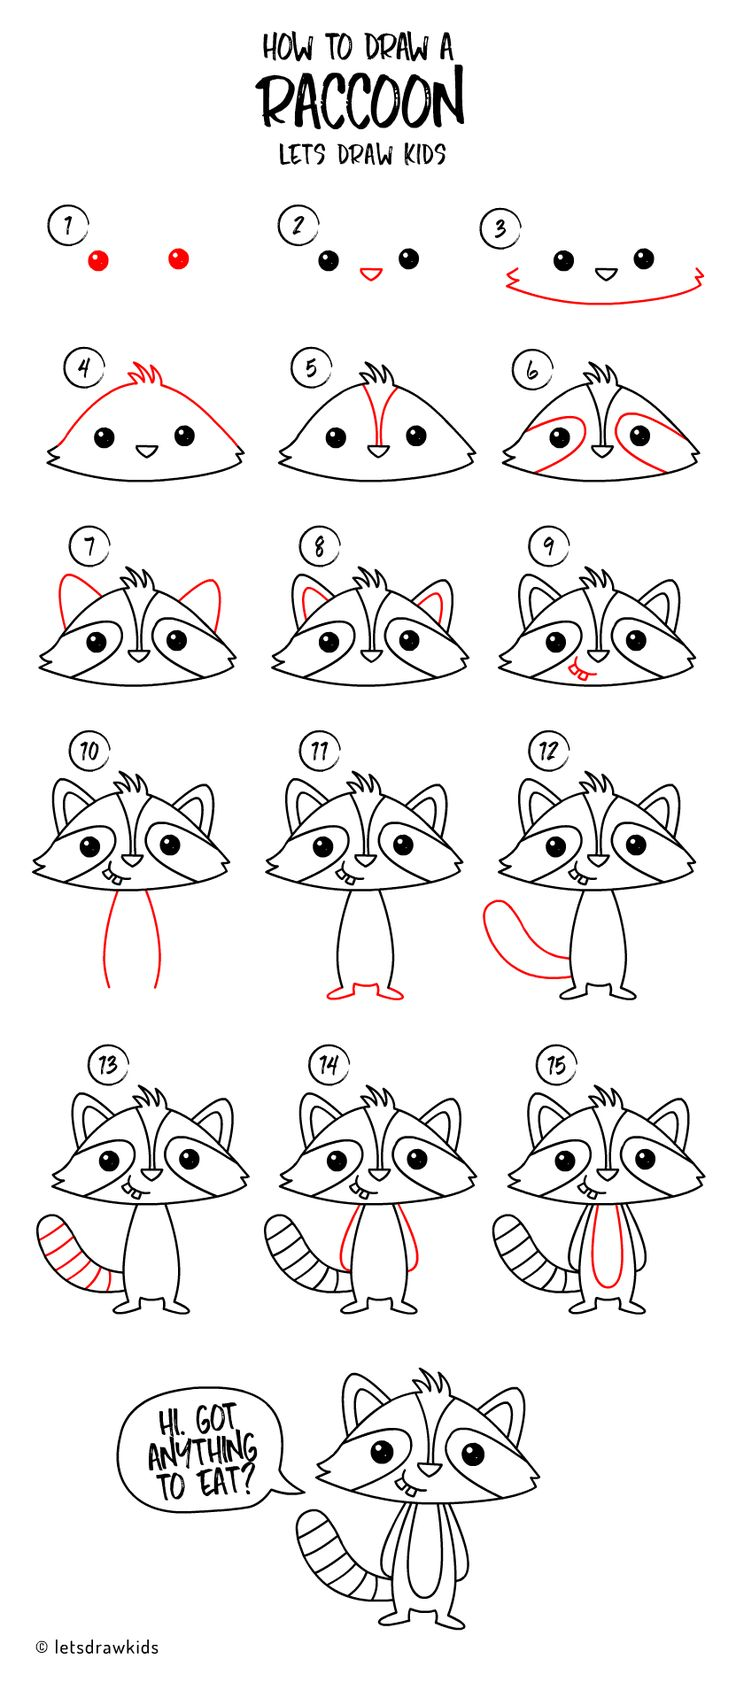 How to draw a Raccoon. Easy drawing, step by step, perfect for kids! Let's draw kids.